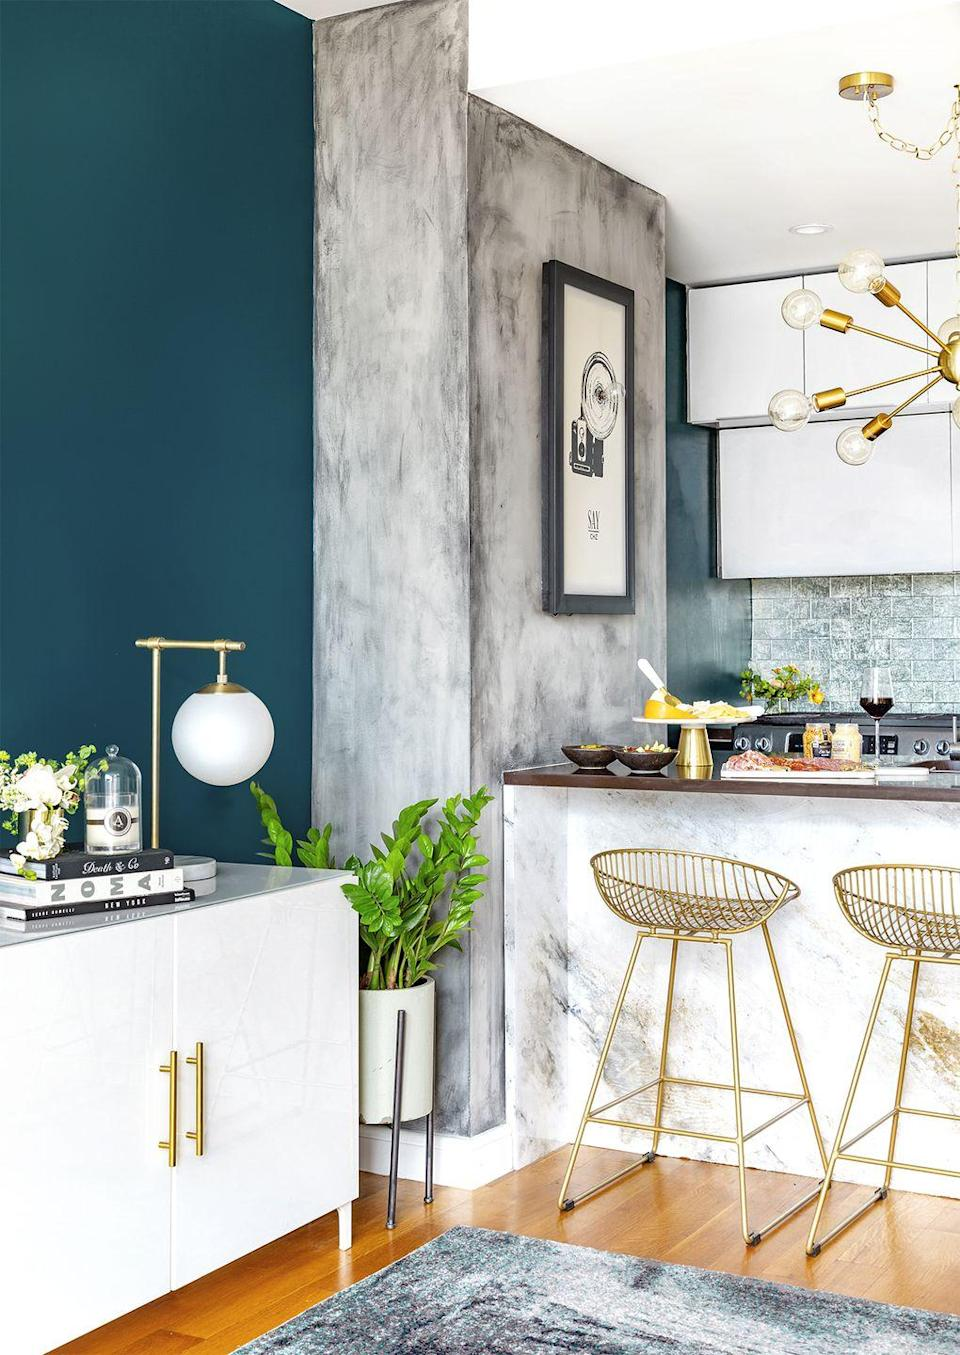 "<p>Bring different textures into your space by painting a concrete-inspired wall. Once you gather your grey paint, dry paintbrush, and lint-free cloth, follow a forgiving buffing technique until you nail your desired look. </p><p><strong>RELATED:</strong> <a href=""https://www.goodhousekeeping.com/home/renovation/advice/a18680/how-to-paint-a-room/"" rel=""nofollow noopener"" target=""_blank"" data-ylk=""slk:How to Paint a Room"" class=""link rapid-noclick-resp"">How to Paint a Room </a></p>"